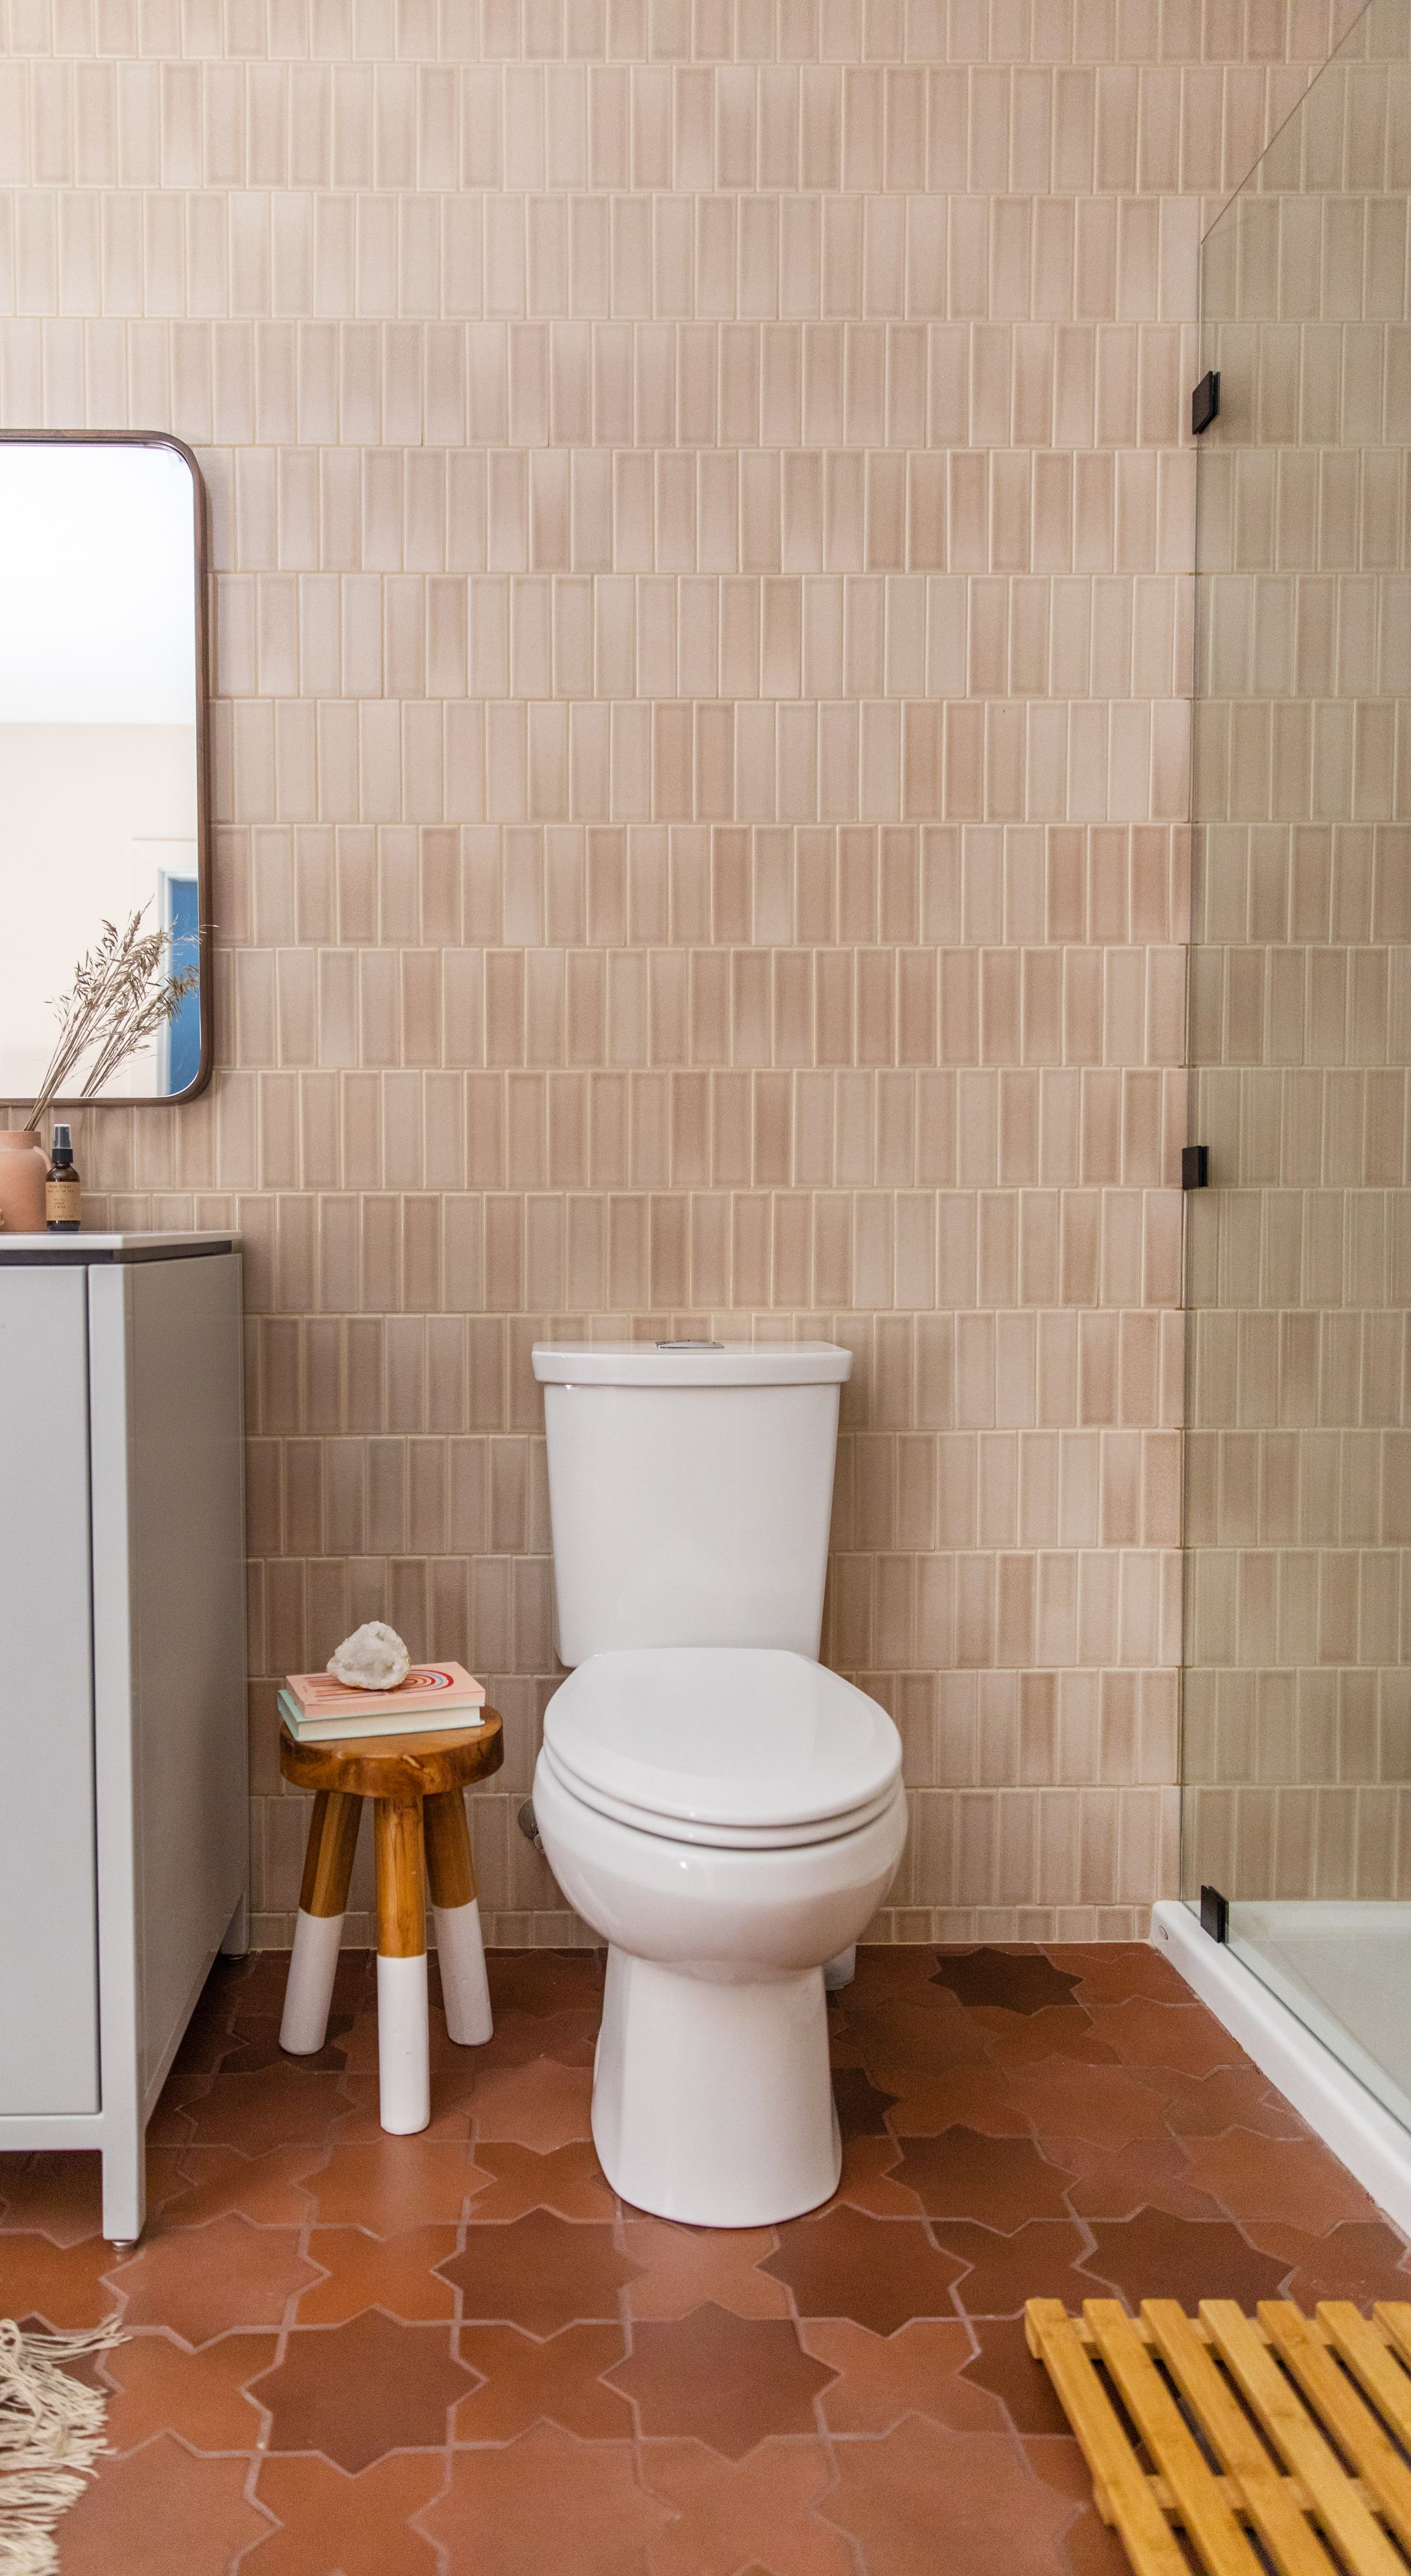 Floor To Ceiling Tile In This Beautiful Basement Bath Featuring 2x6 Tiles In Sand Dune And Large S Brown Tile Bathroom Fireclay Tile Brown Tile Floor Bathroom